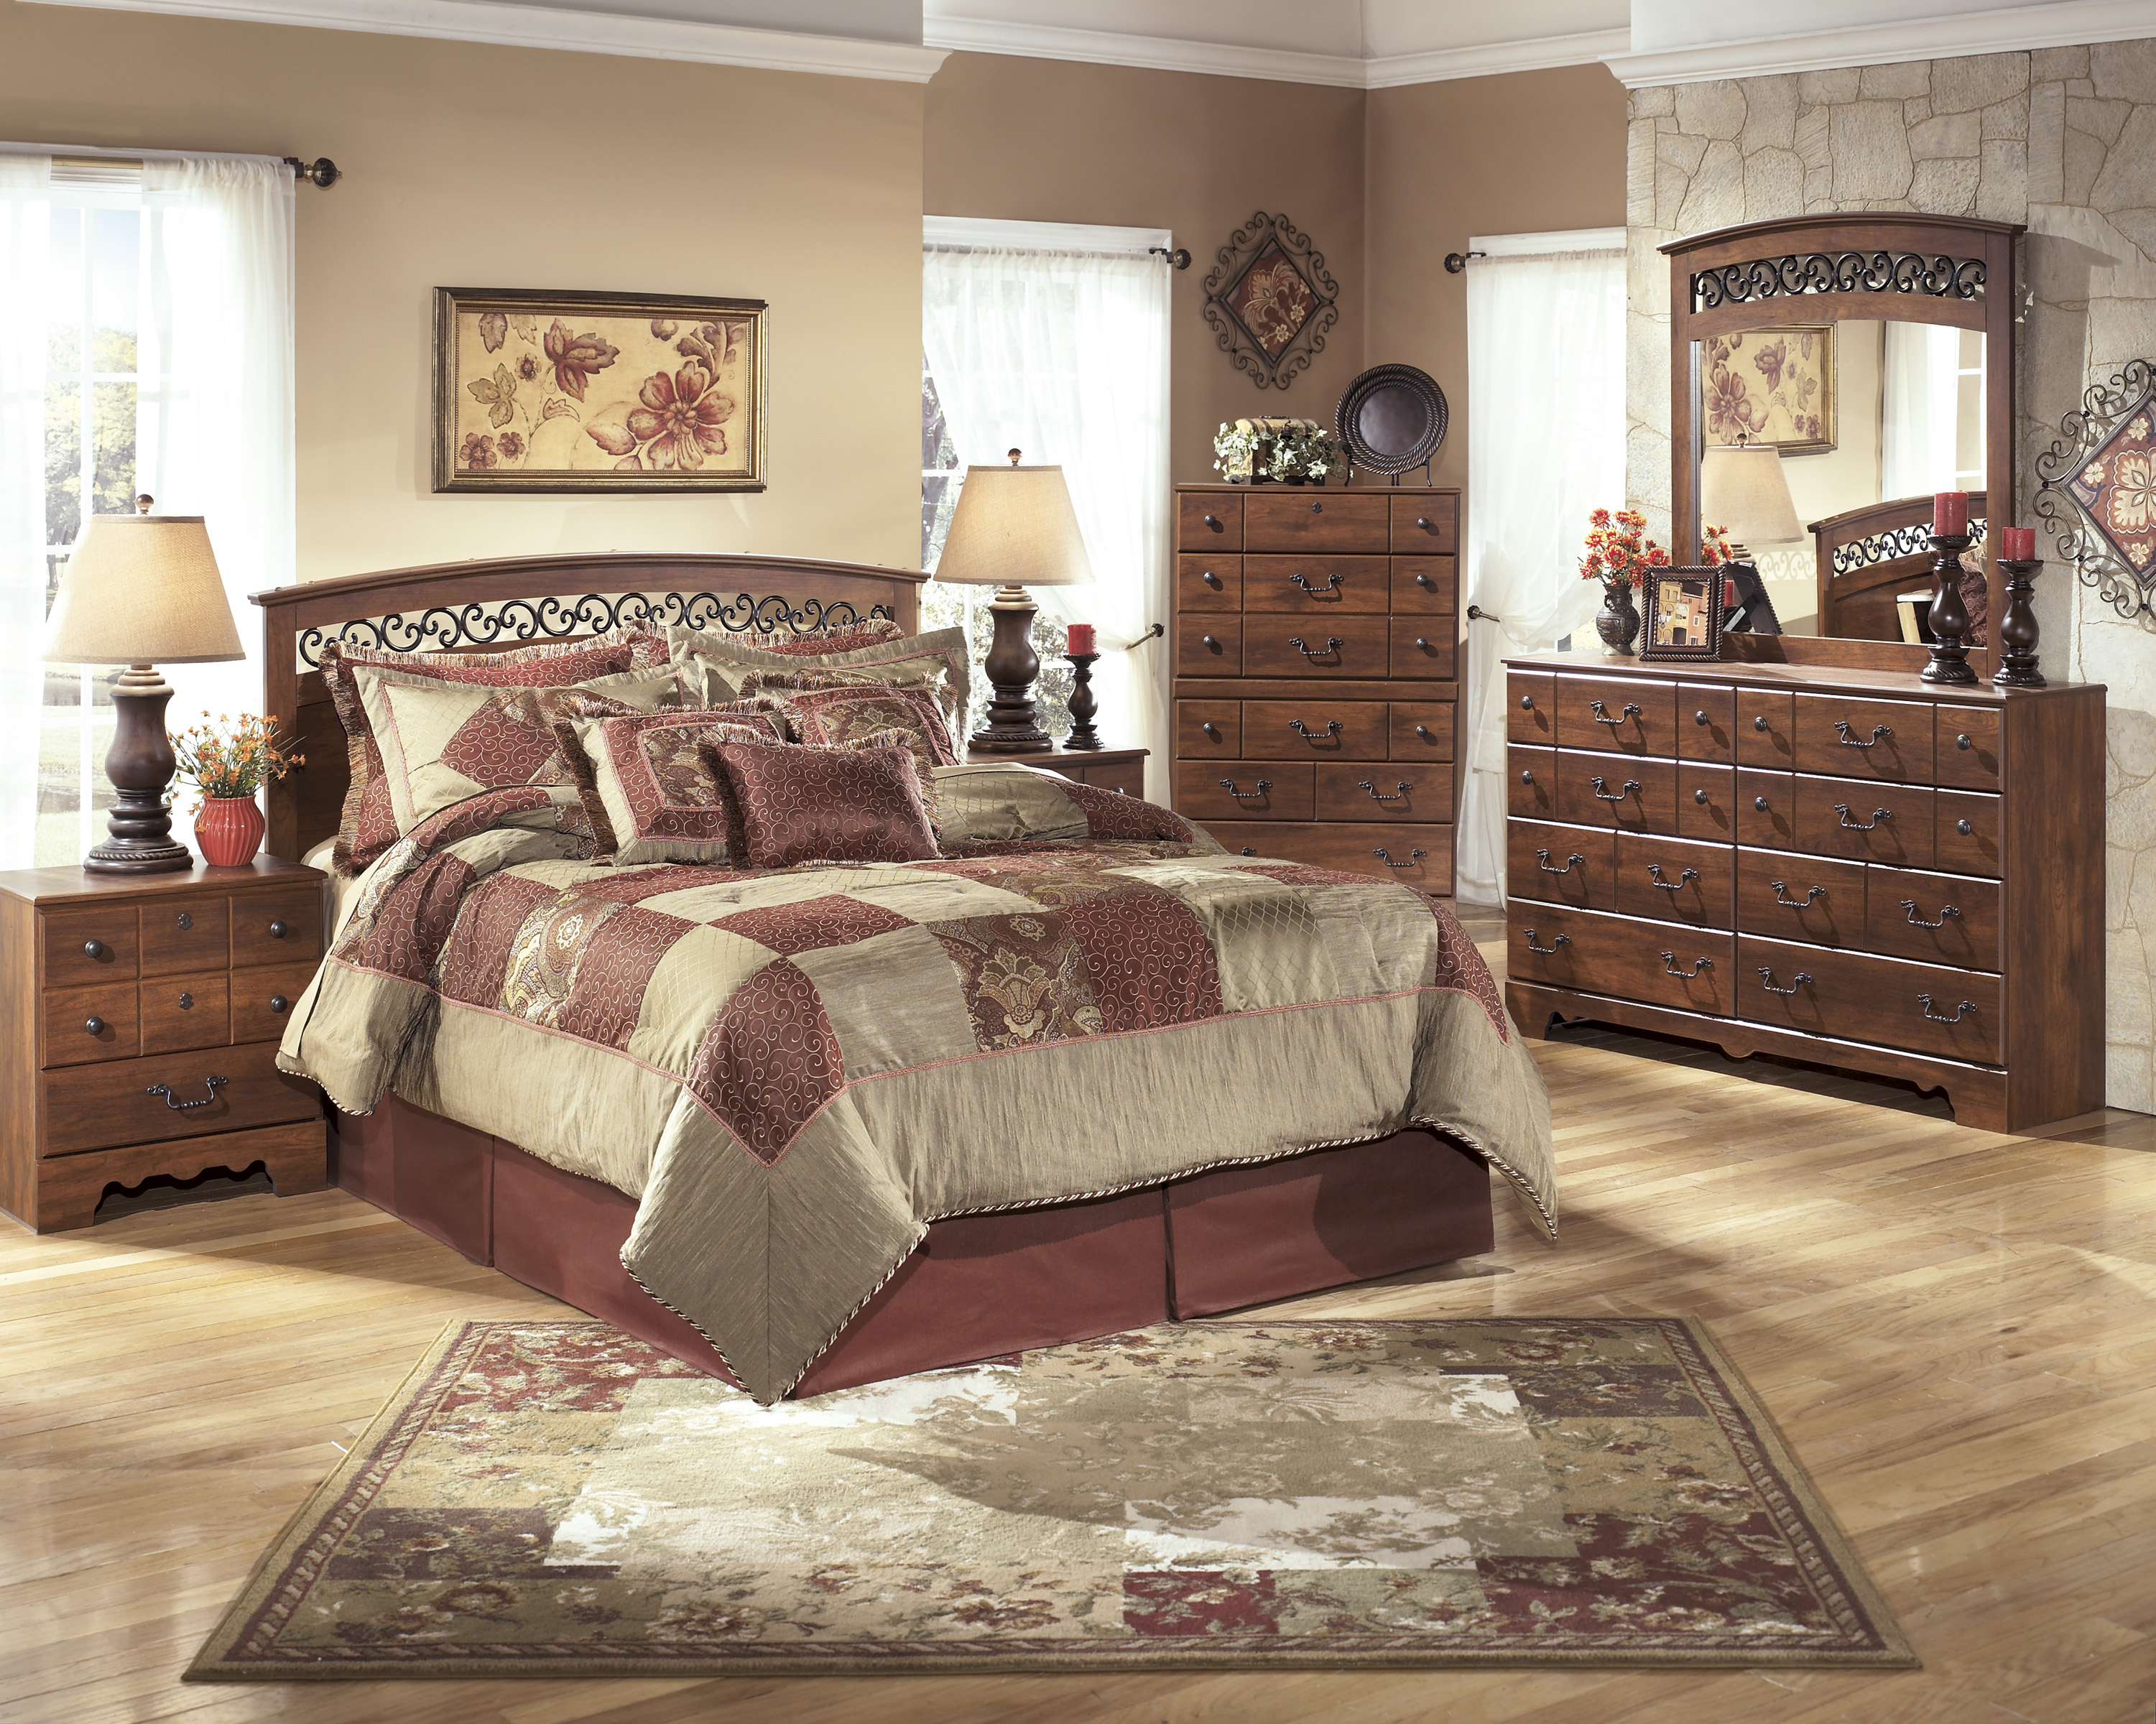 photography home furniture ashley in sets with design bedroom images awesome of